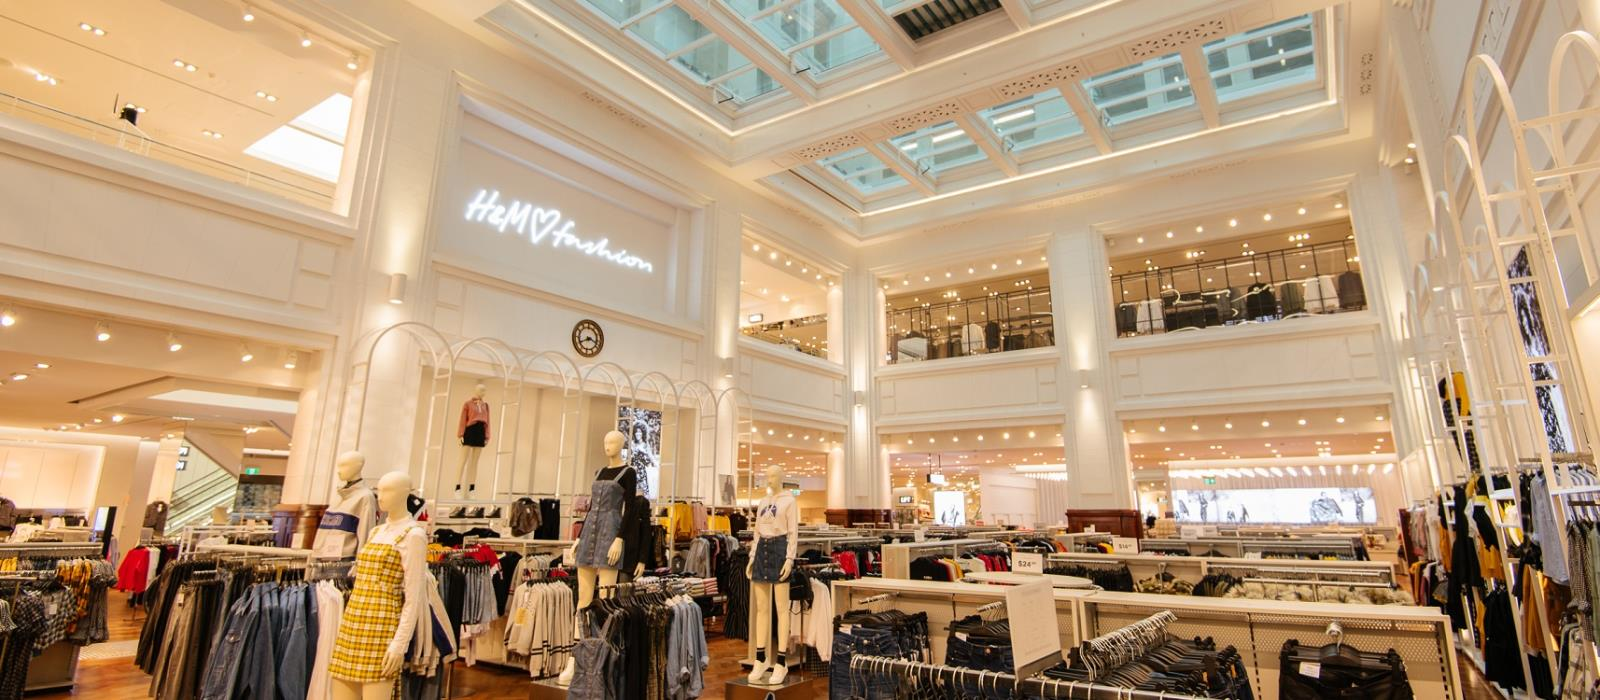 Inside one of Perth City's shopping destinations, H&M